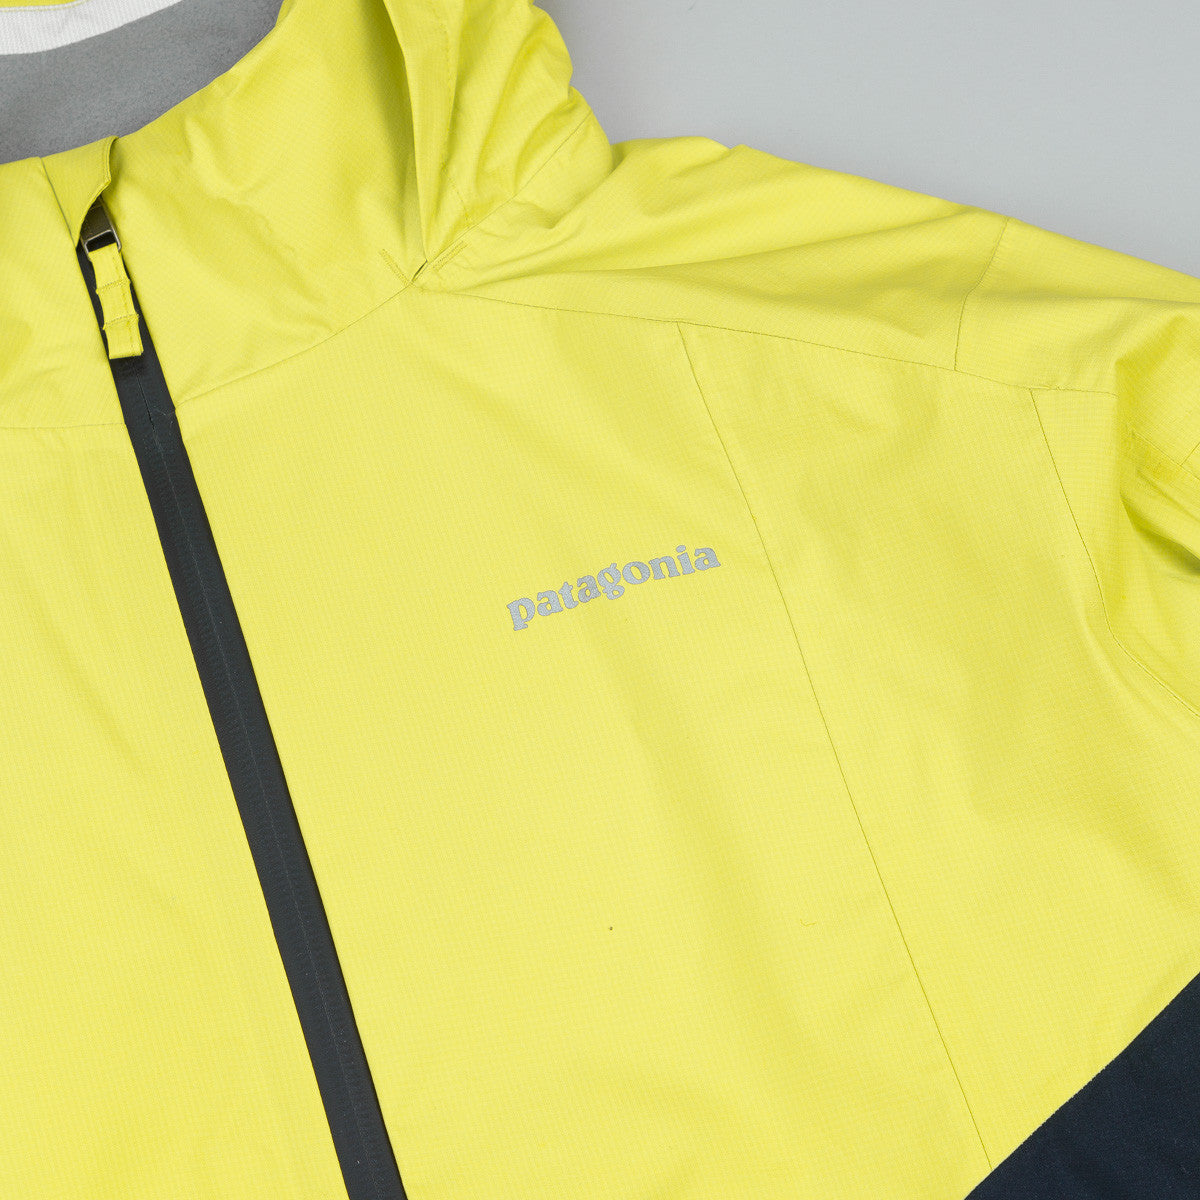 Patagonia Storm Racer Jacket - Chartreuse